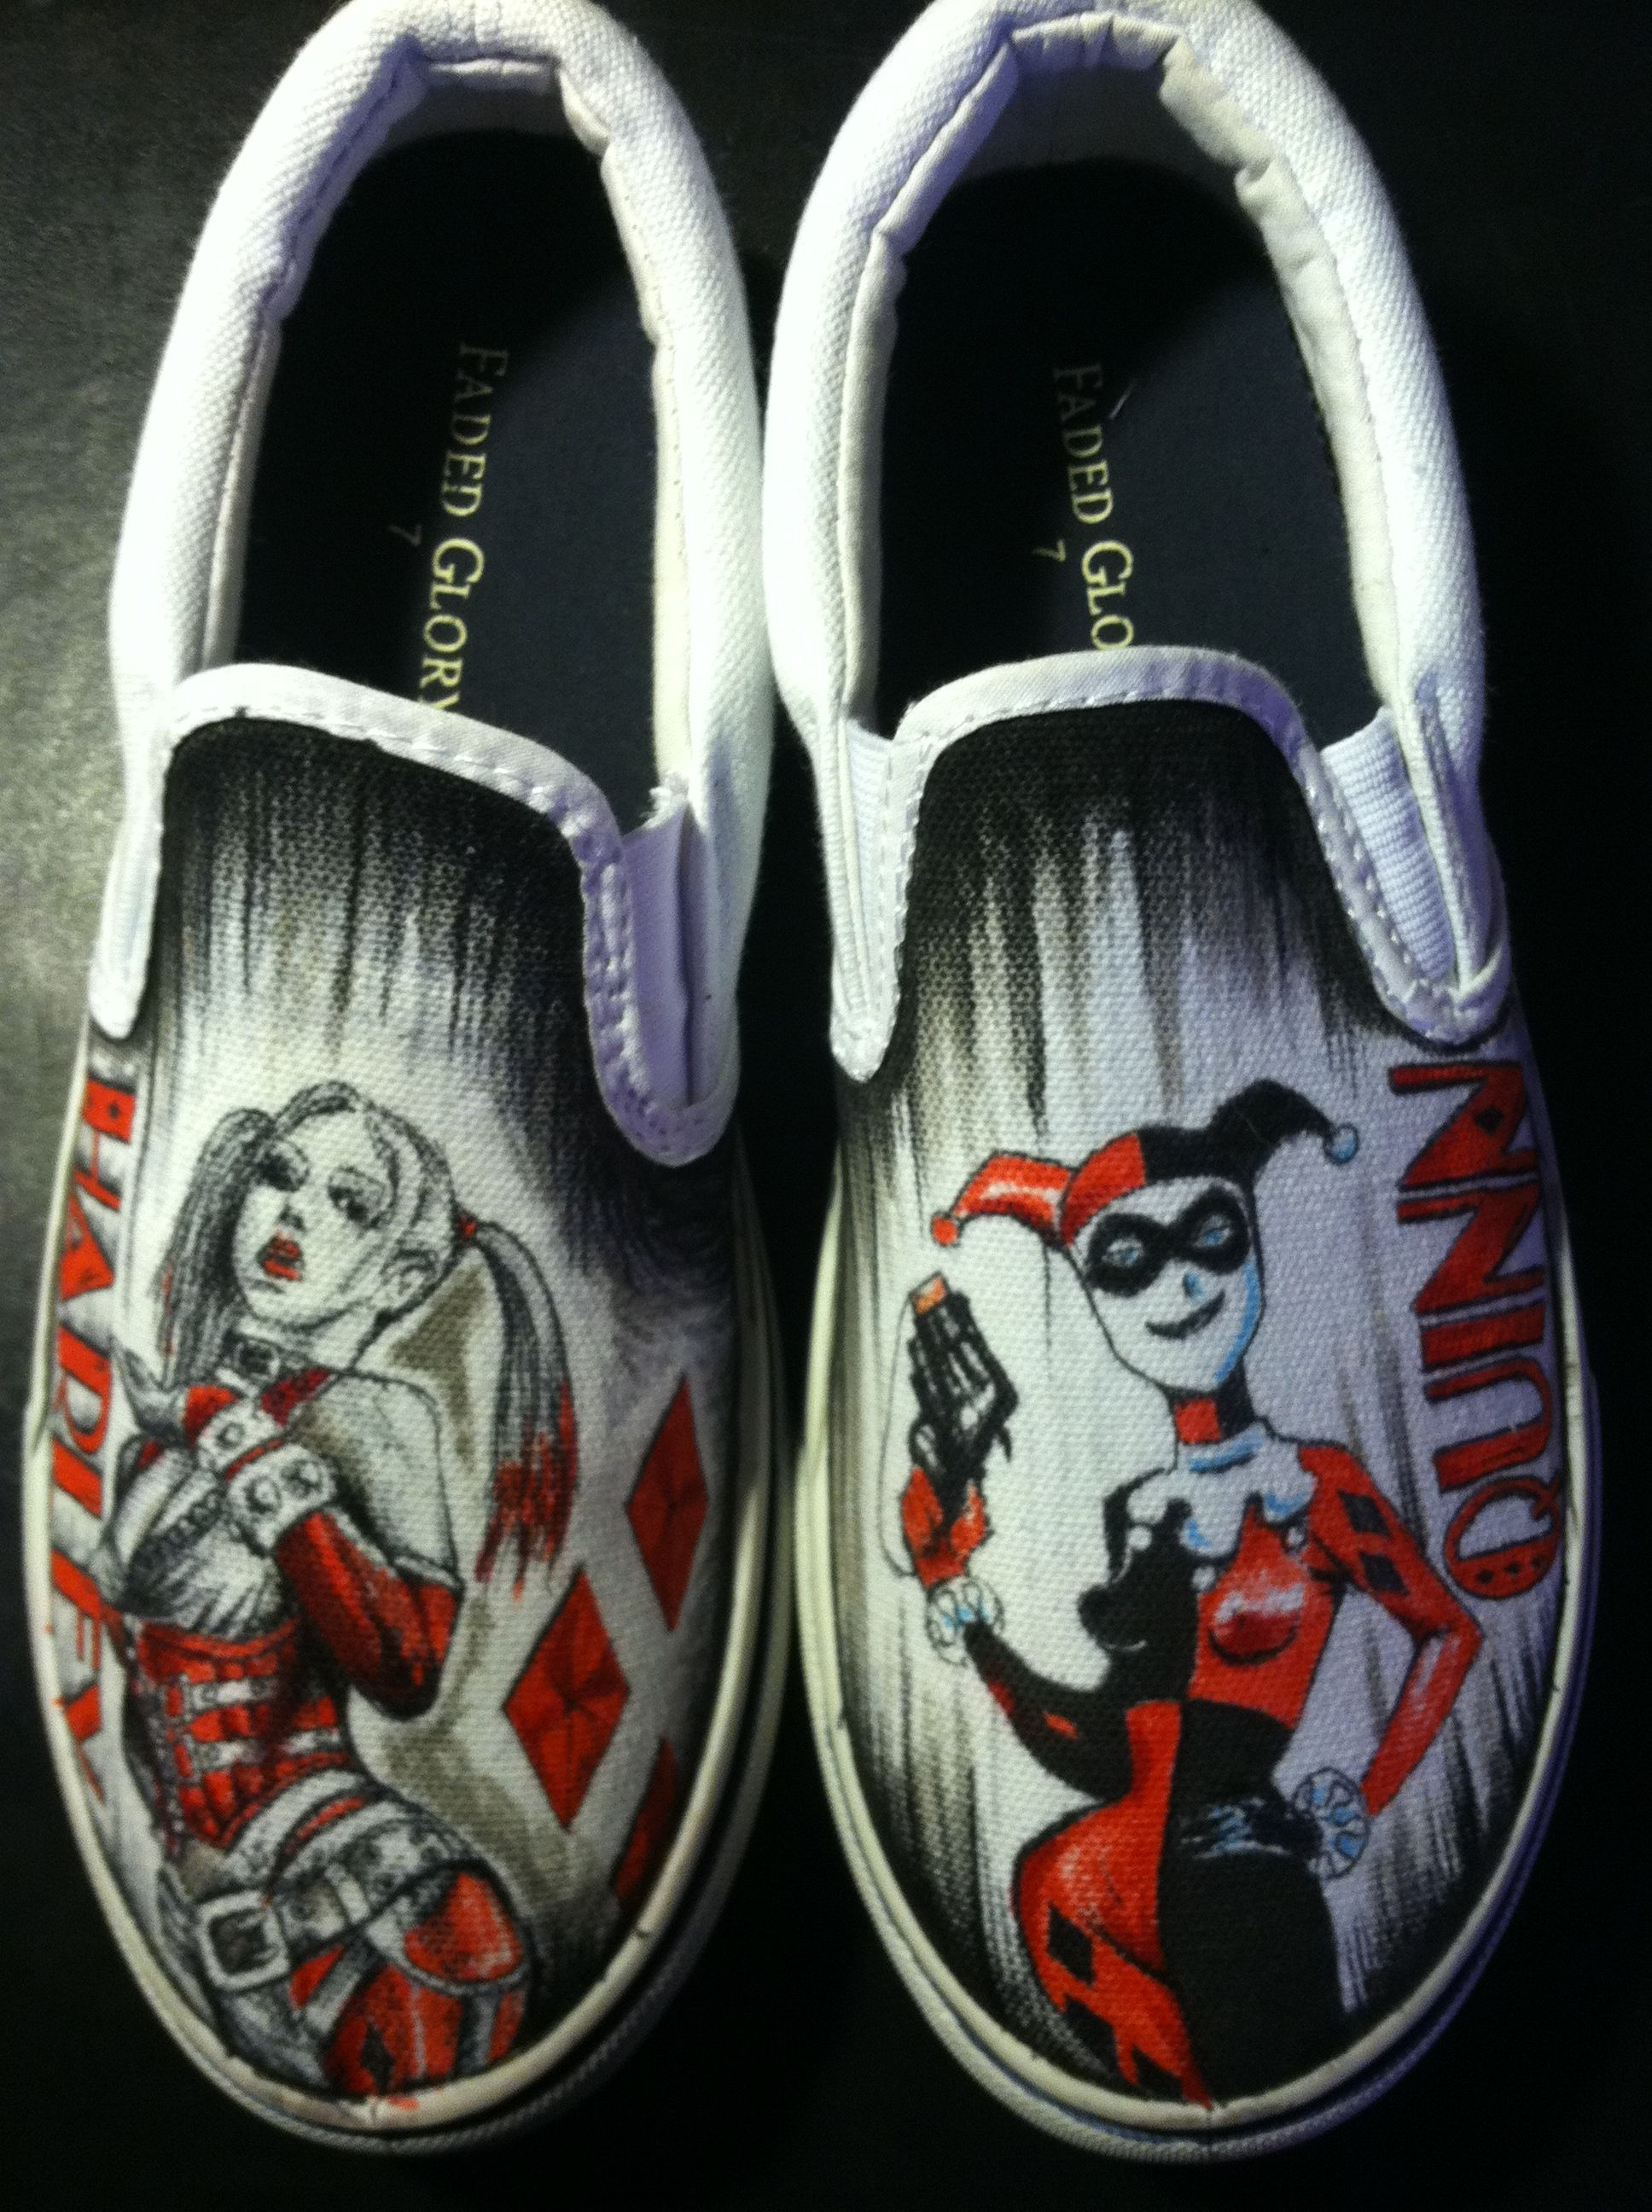 Drawn shoe custom drawn To Custom Drawn Drawn made